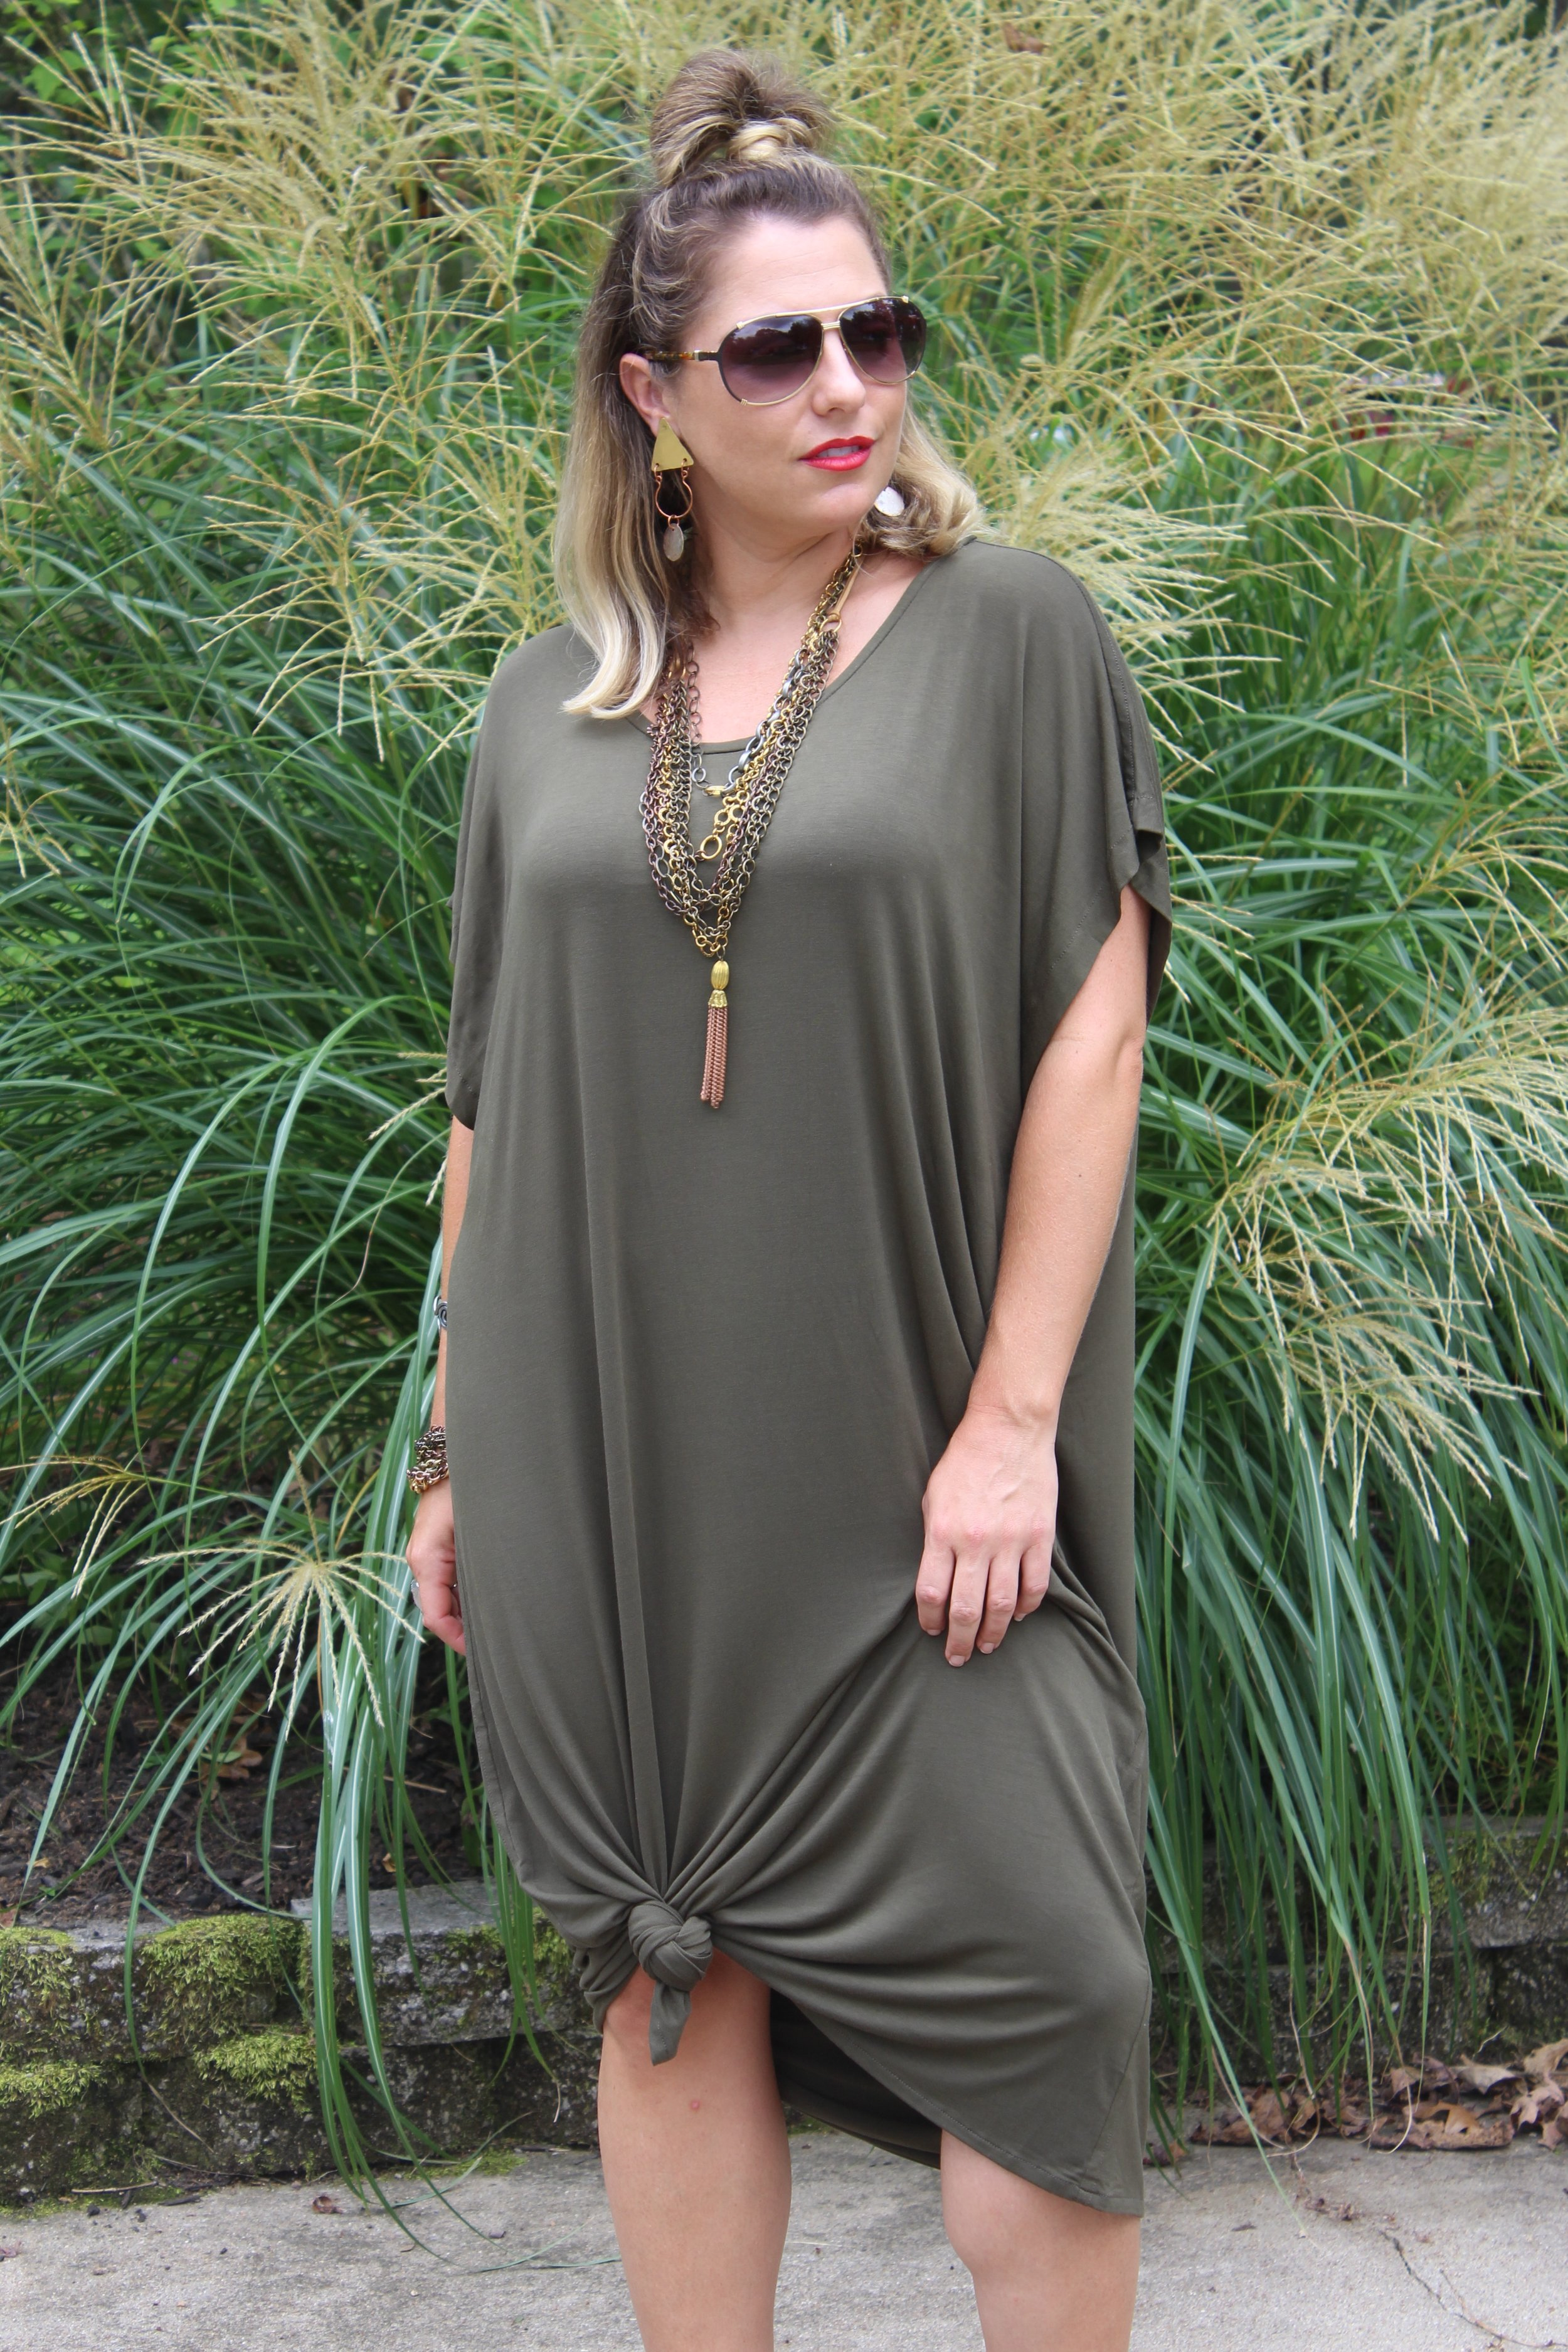 Yana K pieces are great for tying up in the middle or on the sides to give it interest or change the shape of the piece!